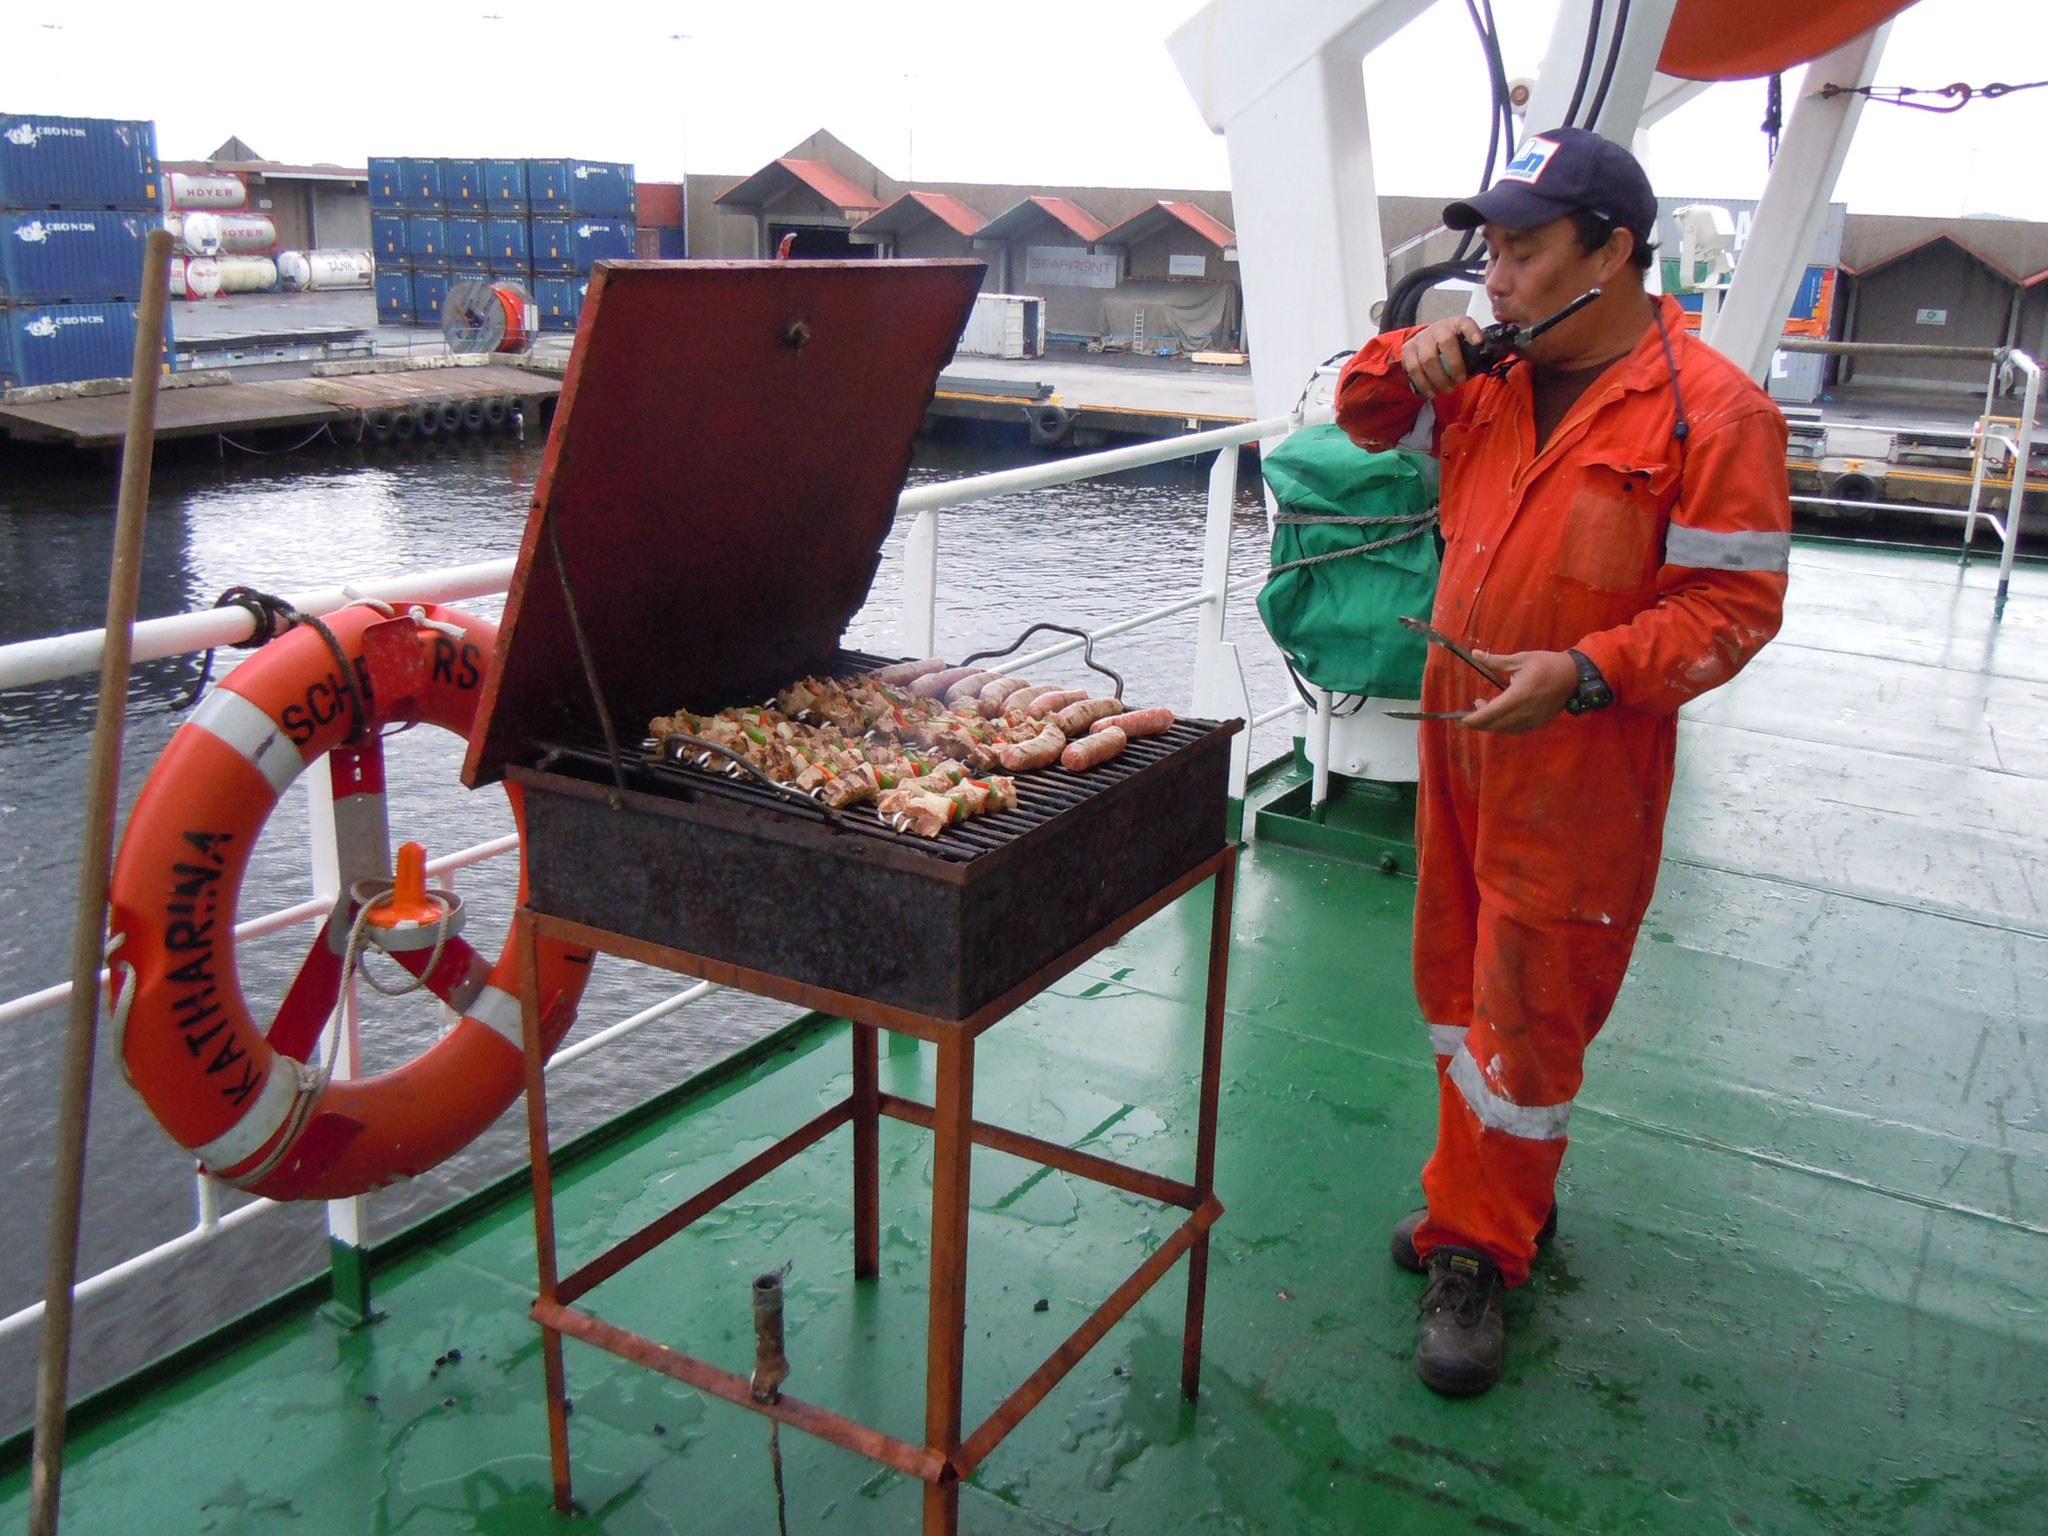 2. Barbecue in Kristiansand